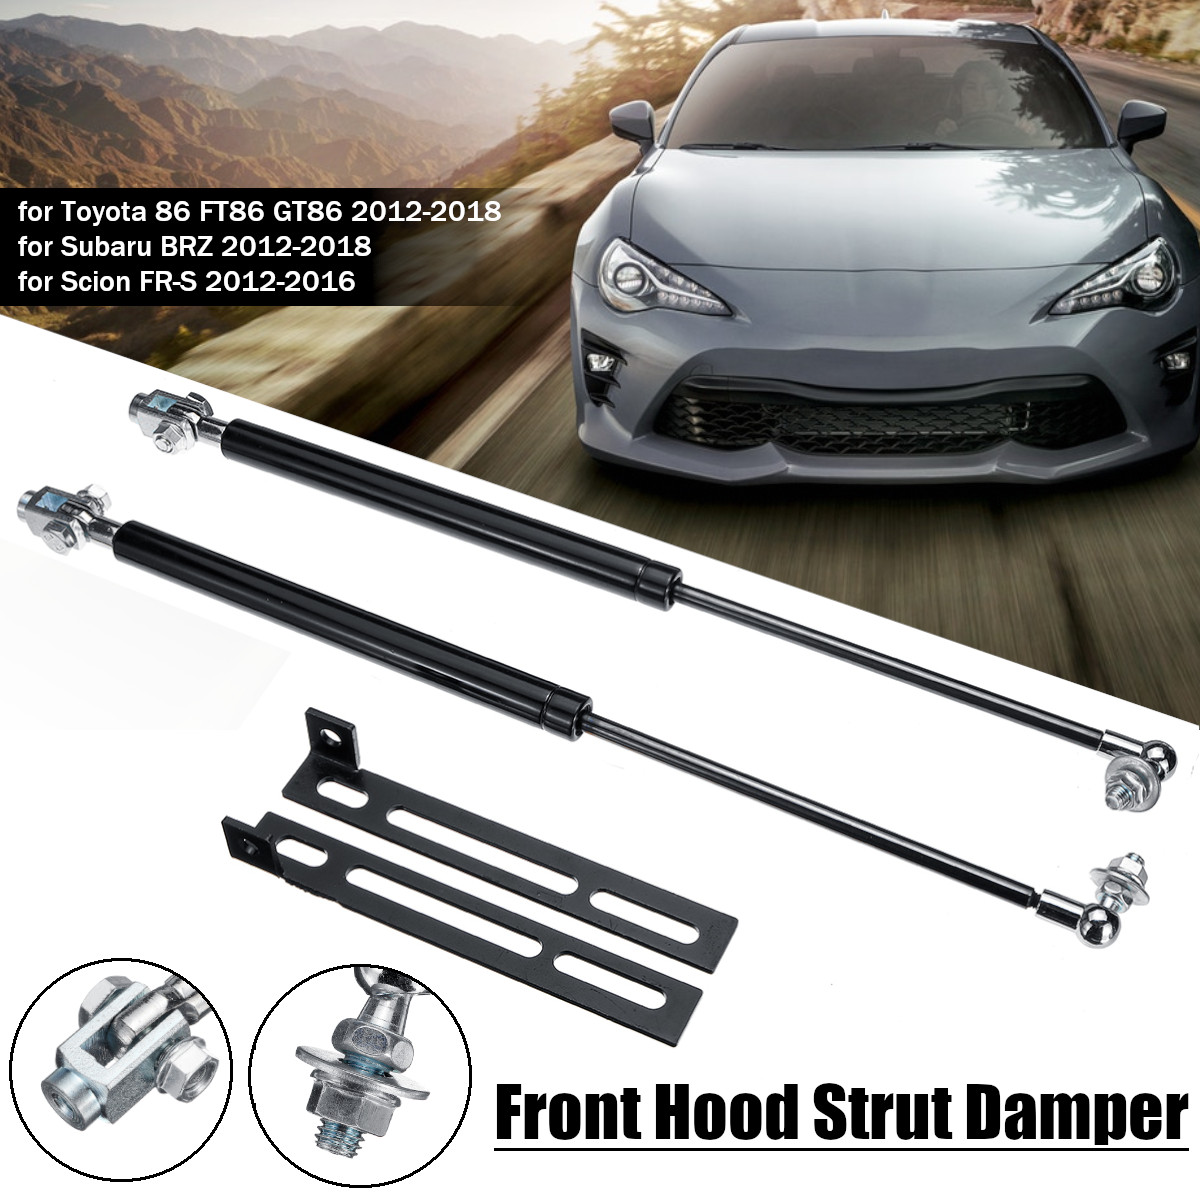 2 Hood Lift Supports Front Struts Prop Rods Arms Damper Gas Springs Shocks NEW